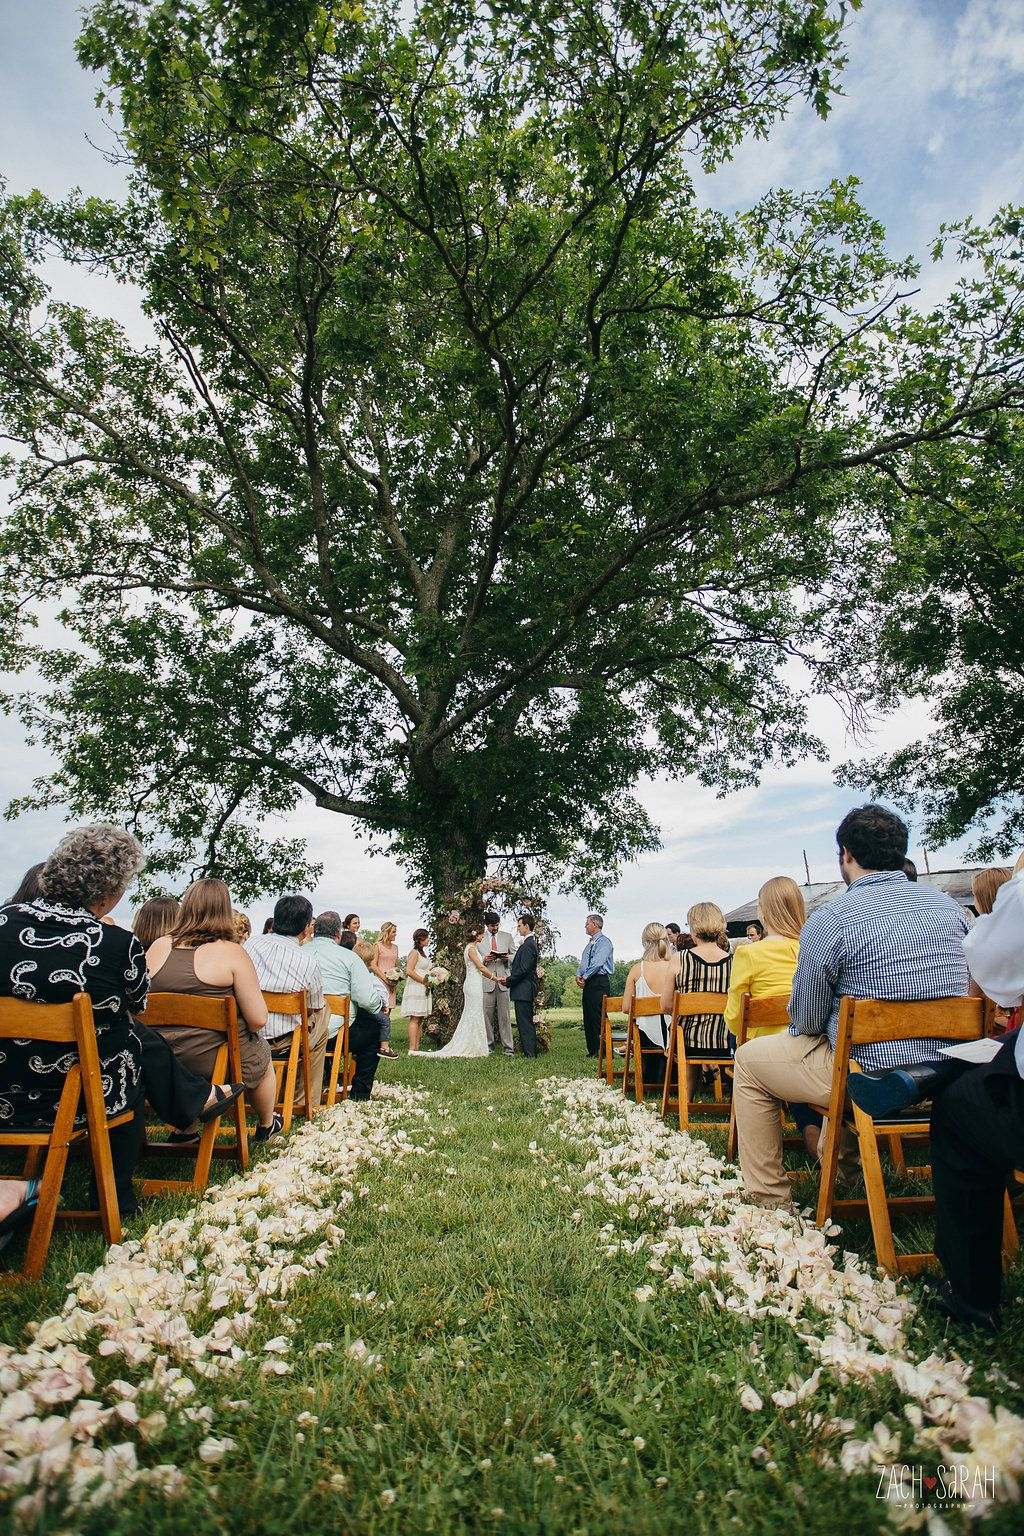 Hayley + Harrison | Heritage Hall lawn | Zach and Sarah Photography | Main Event Productions